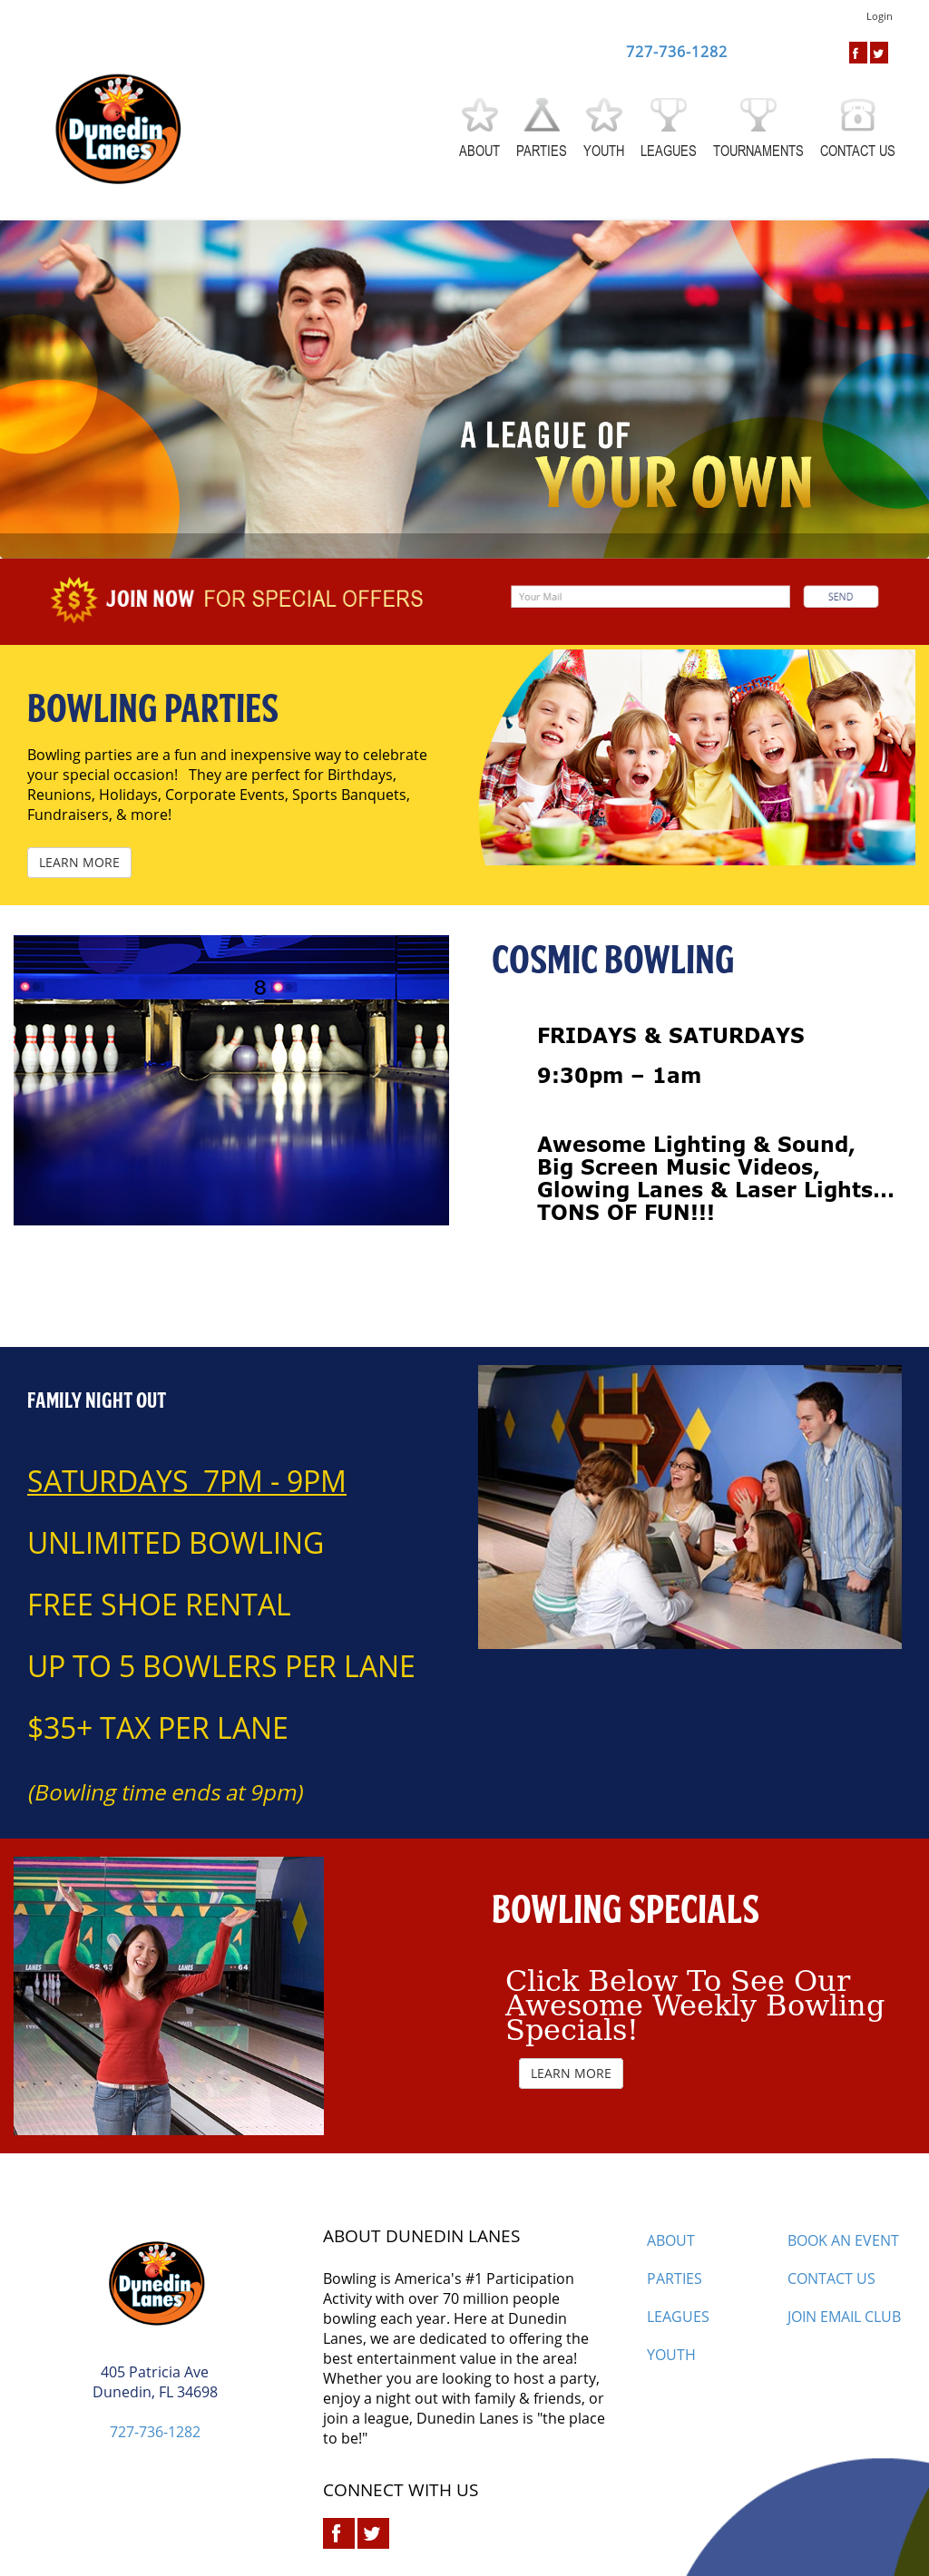 Dunedin Lanes Competitors, Revenue and Employees - Owler